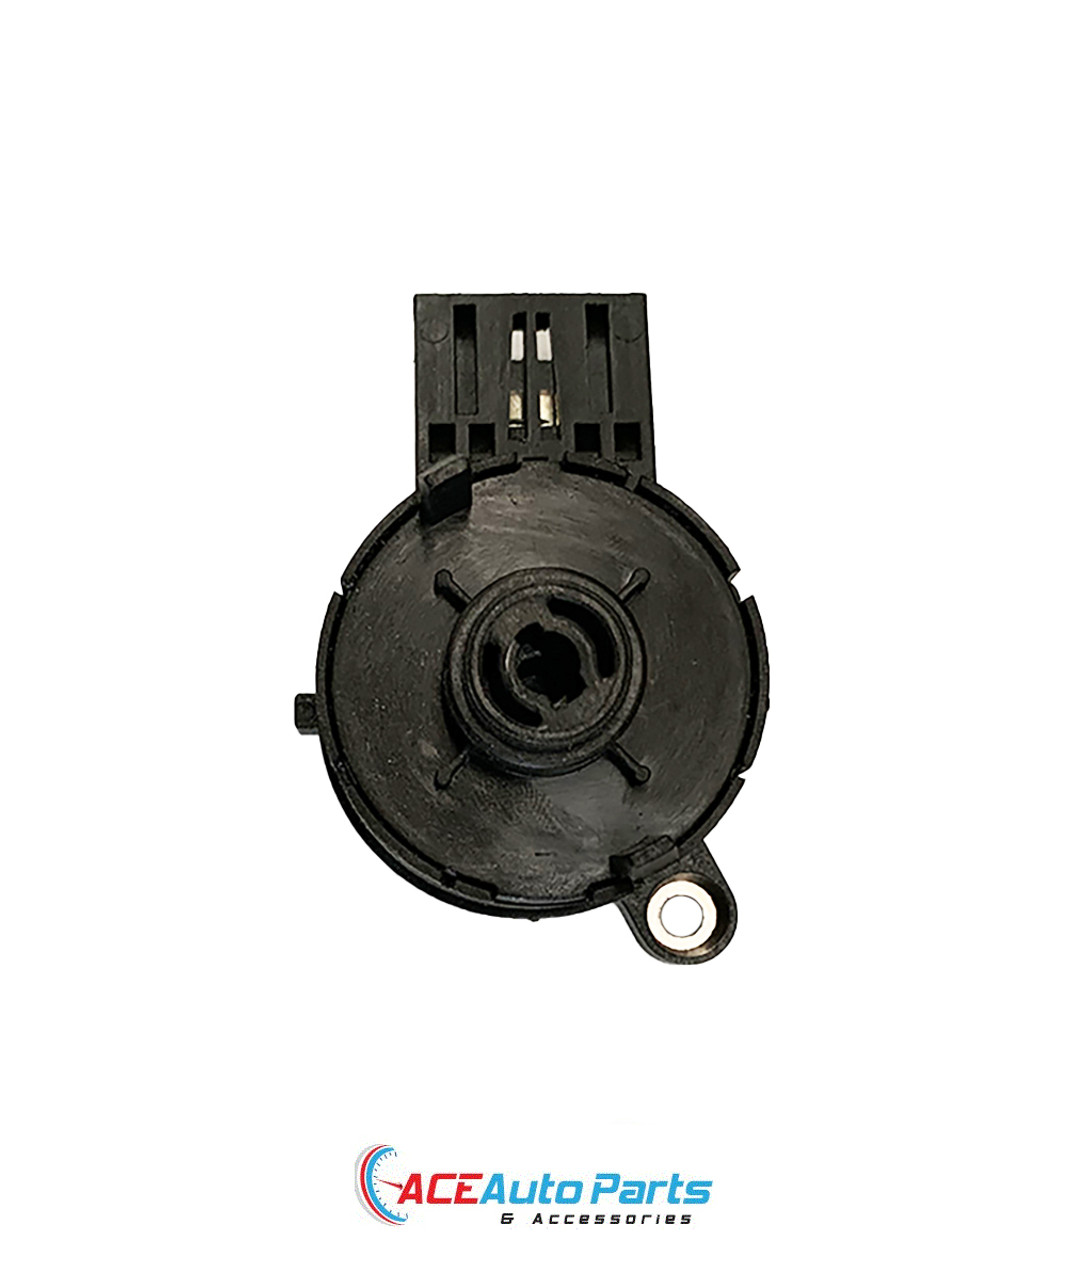 Ignition Switch For Ford BF + FG + FGX Falcon Futura G6 G6E XR6 XR8